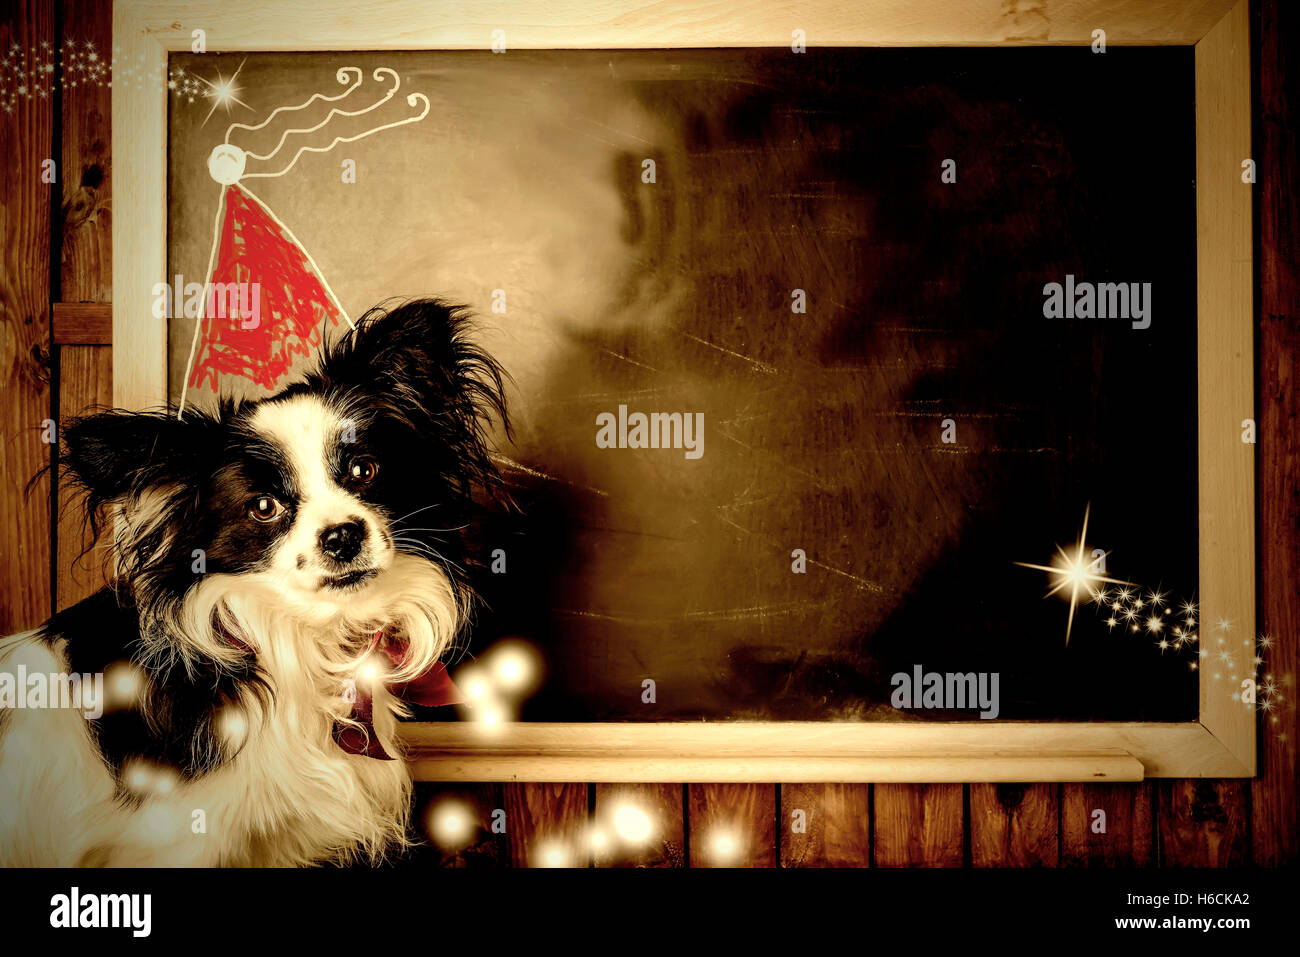 Funny dog christmas greeting cards little dog and santa hat stock funny dog christmas greeting cards little dog and santa hat childrens drawing in a blackboard with copy space to write message kristyandbryce Image collections